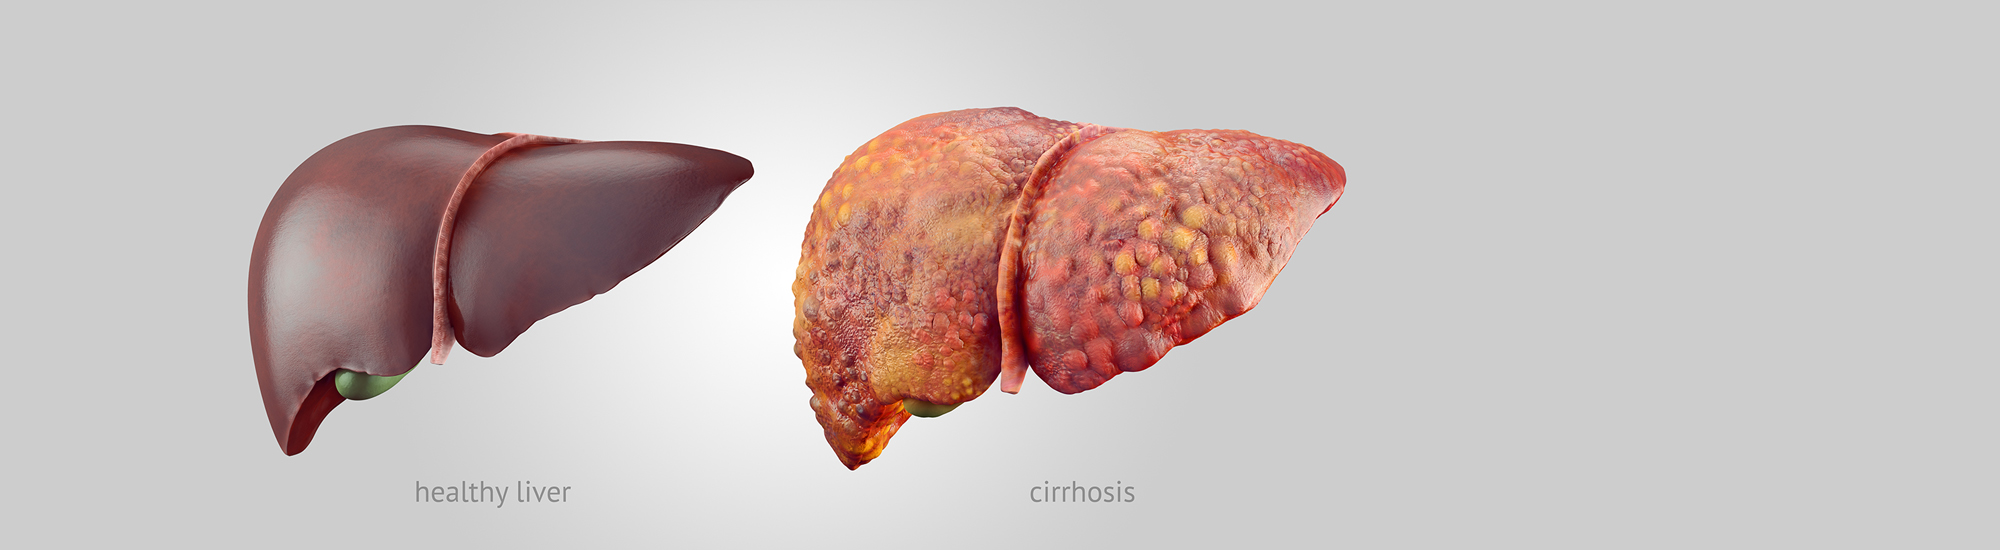 Ayurvedic treatment for What is Liver Cirrhosis